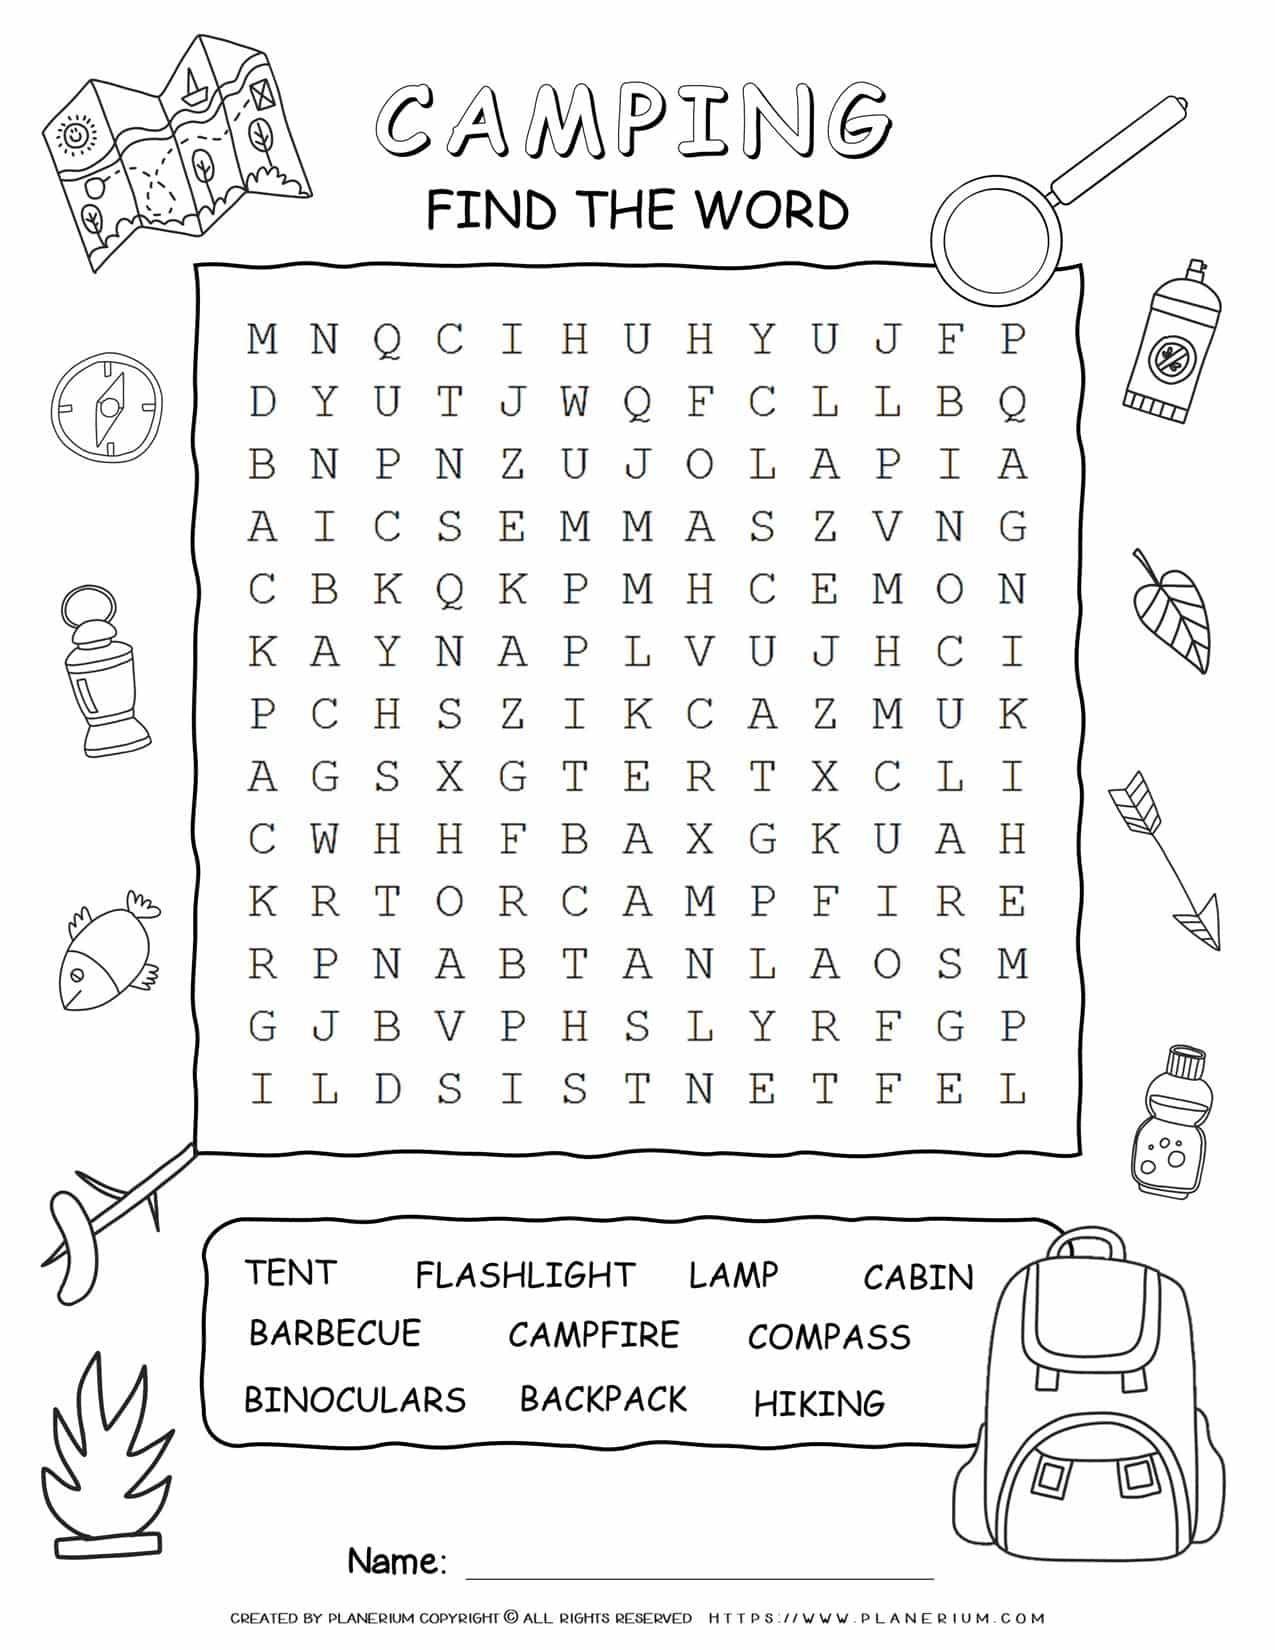 Camping Word Search - Ten Words | Planerium